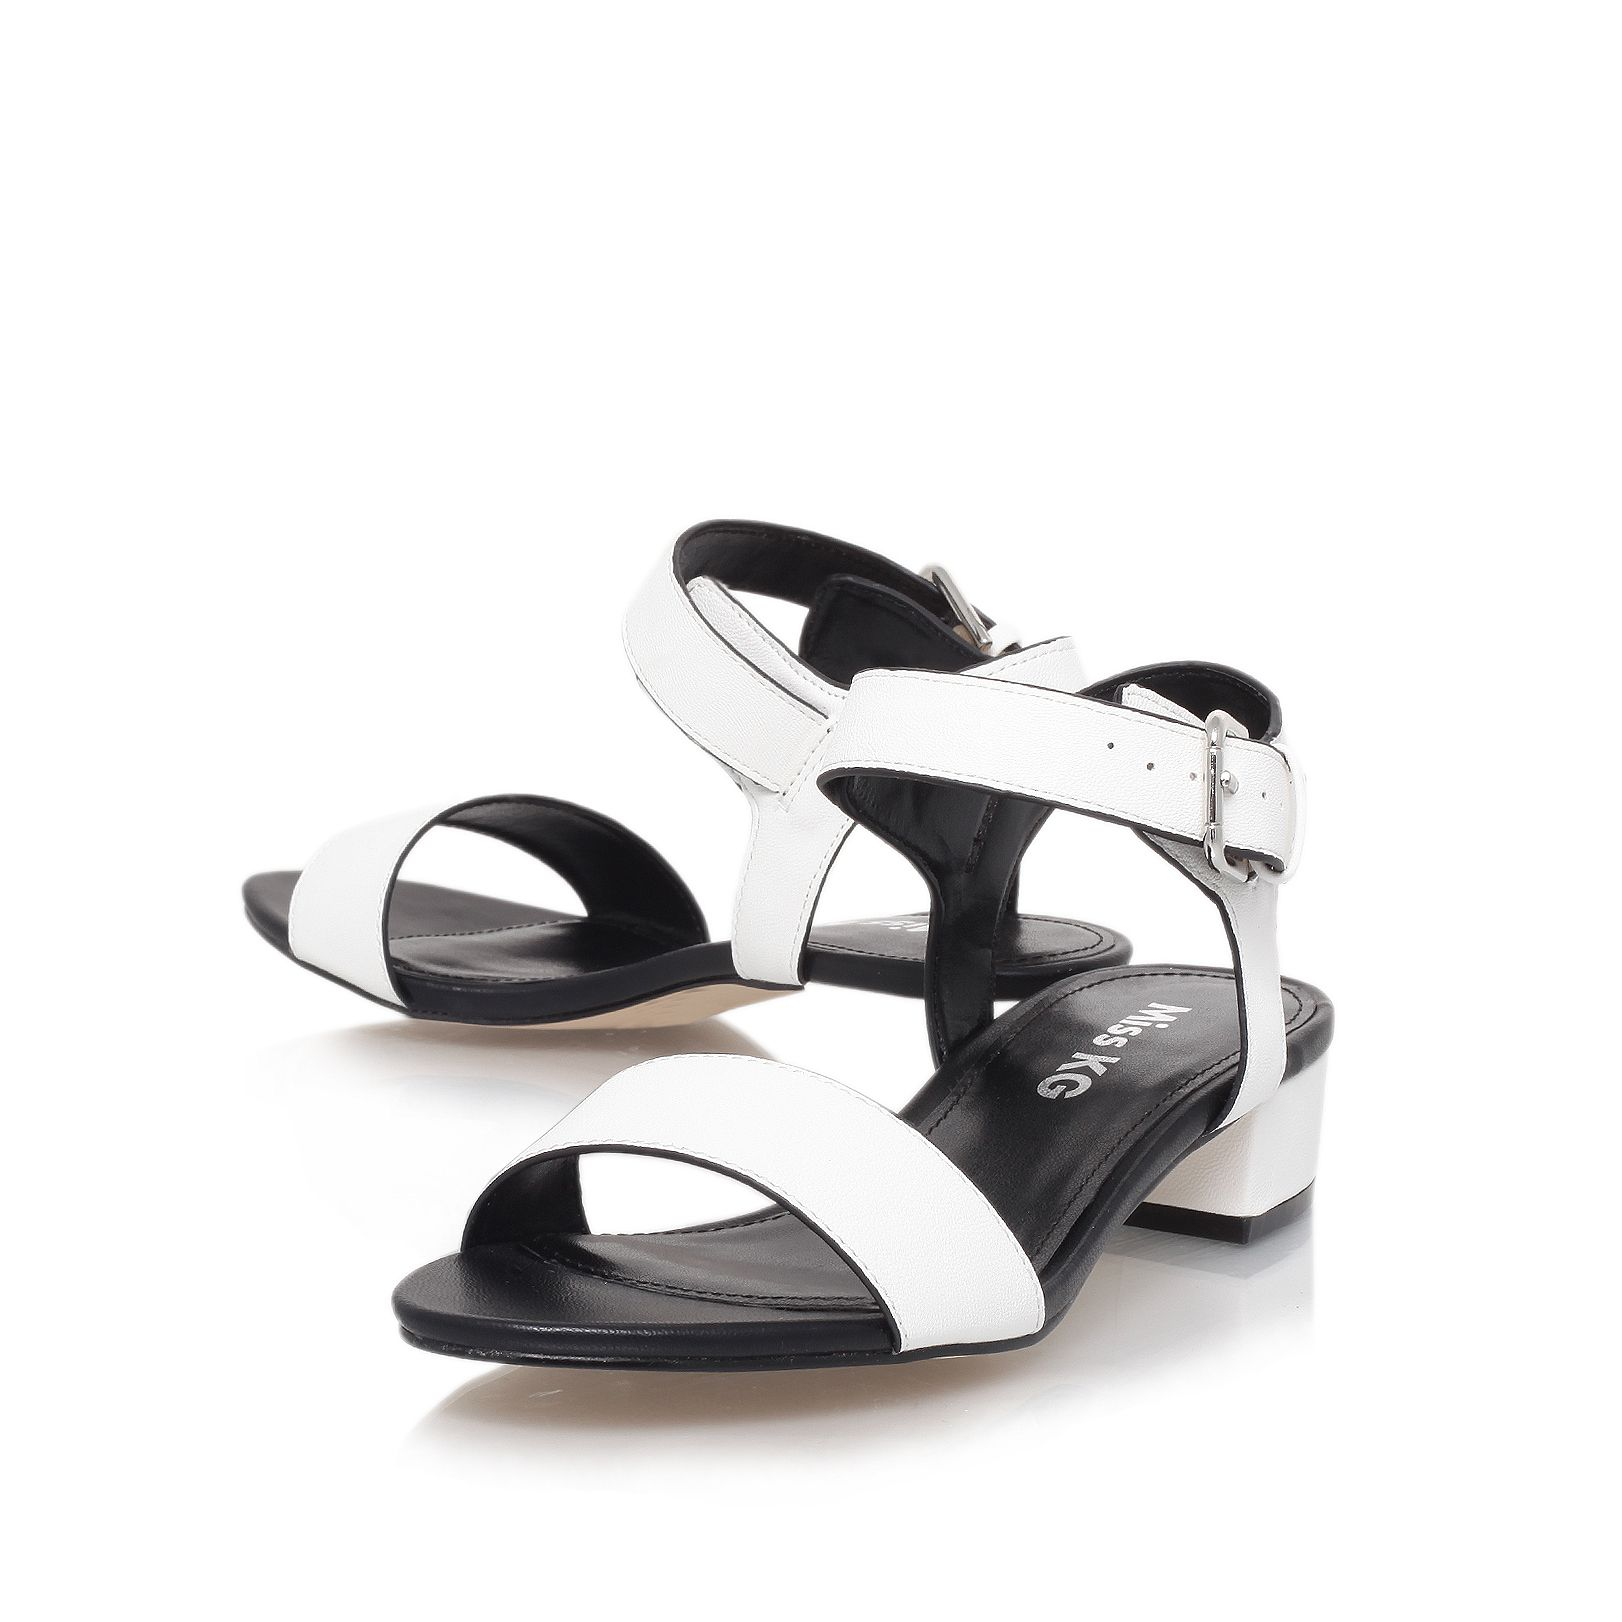 Pamela low heel sandals